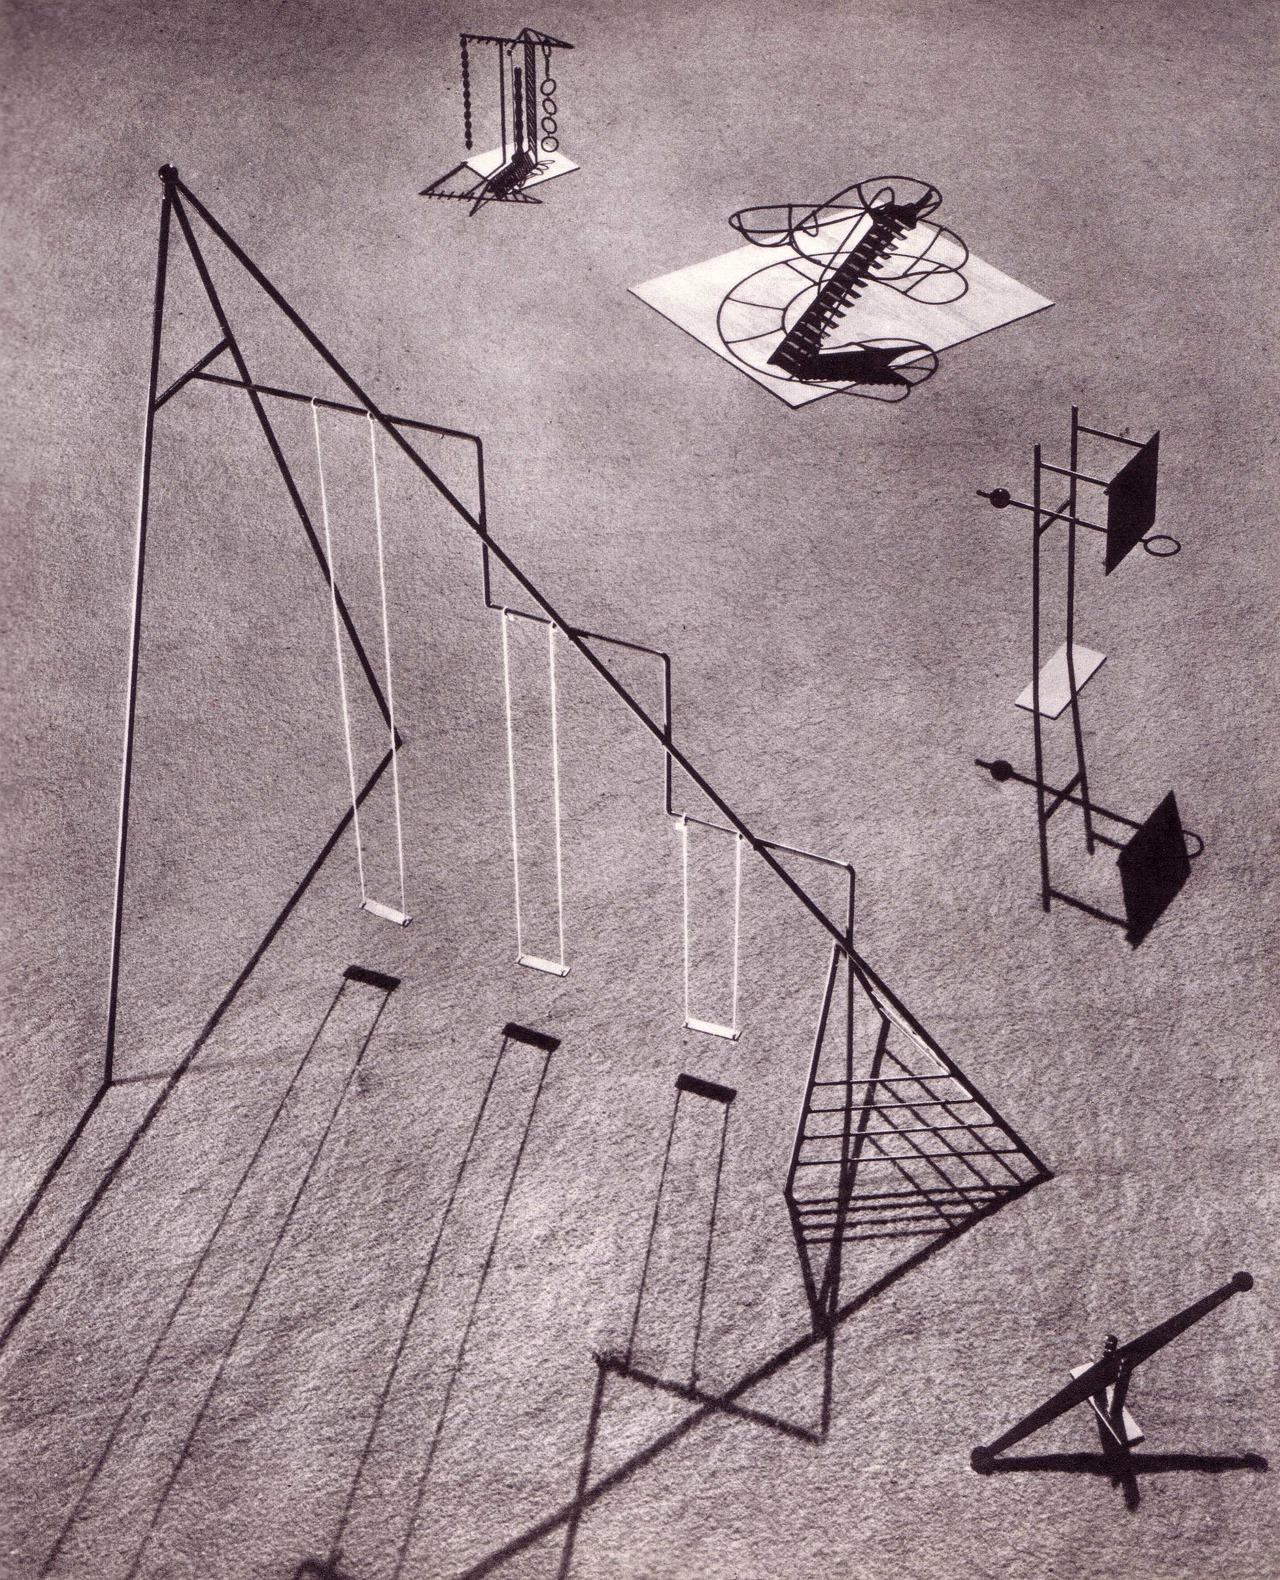 theimportanceofbeingmodernist:  Swings and roundabouts: playground equipment by Isamu Noguchi- Isamu Noguchi is best know for his sculptural wood and glass coffee table and his paper 'Akari' lights. This playground equipment was designed in 1939 for Ala Moana park in Hawaii but unfortunately was never built as the park comissioner died before the scheme was realised. I'm not sure how successful the equipment would be for play, but visually it's pretty amazing (and that's the most important thing) !